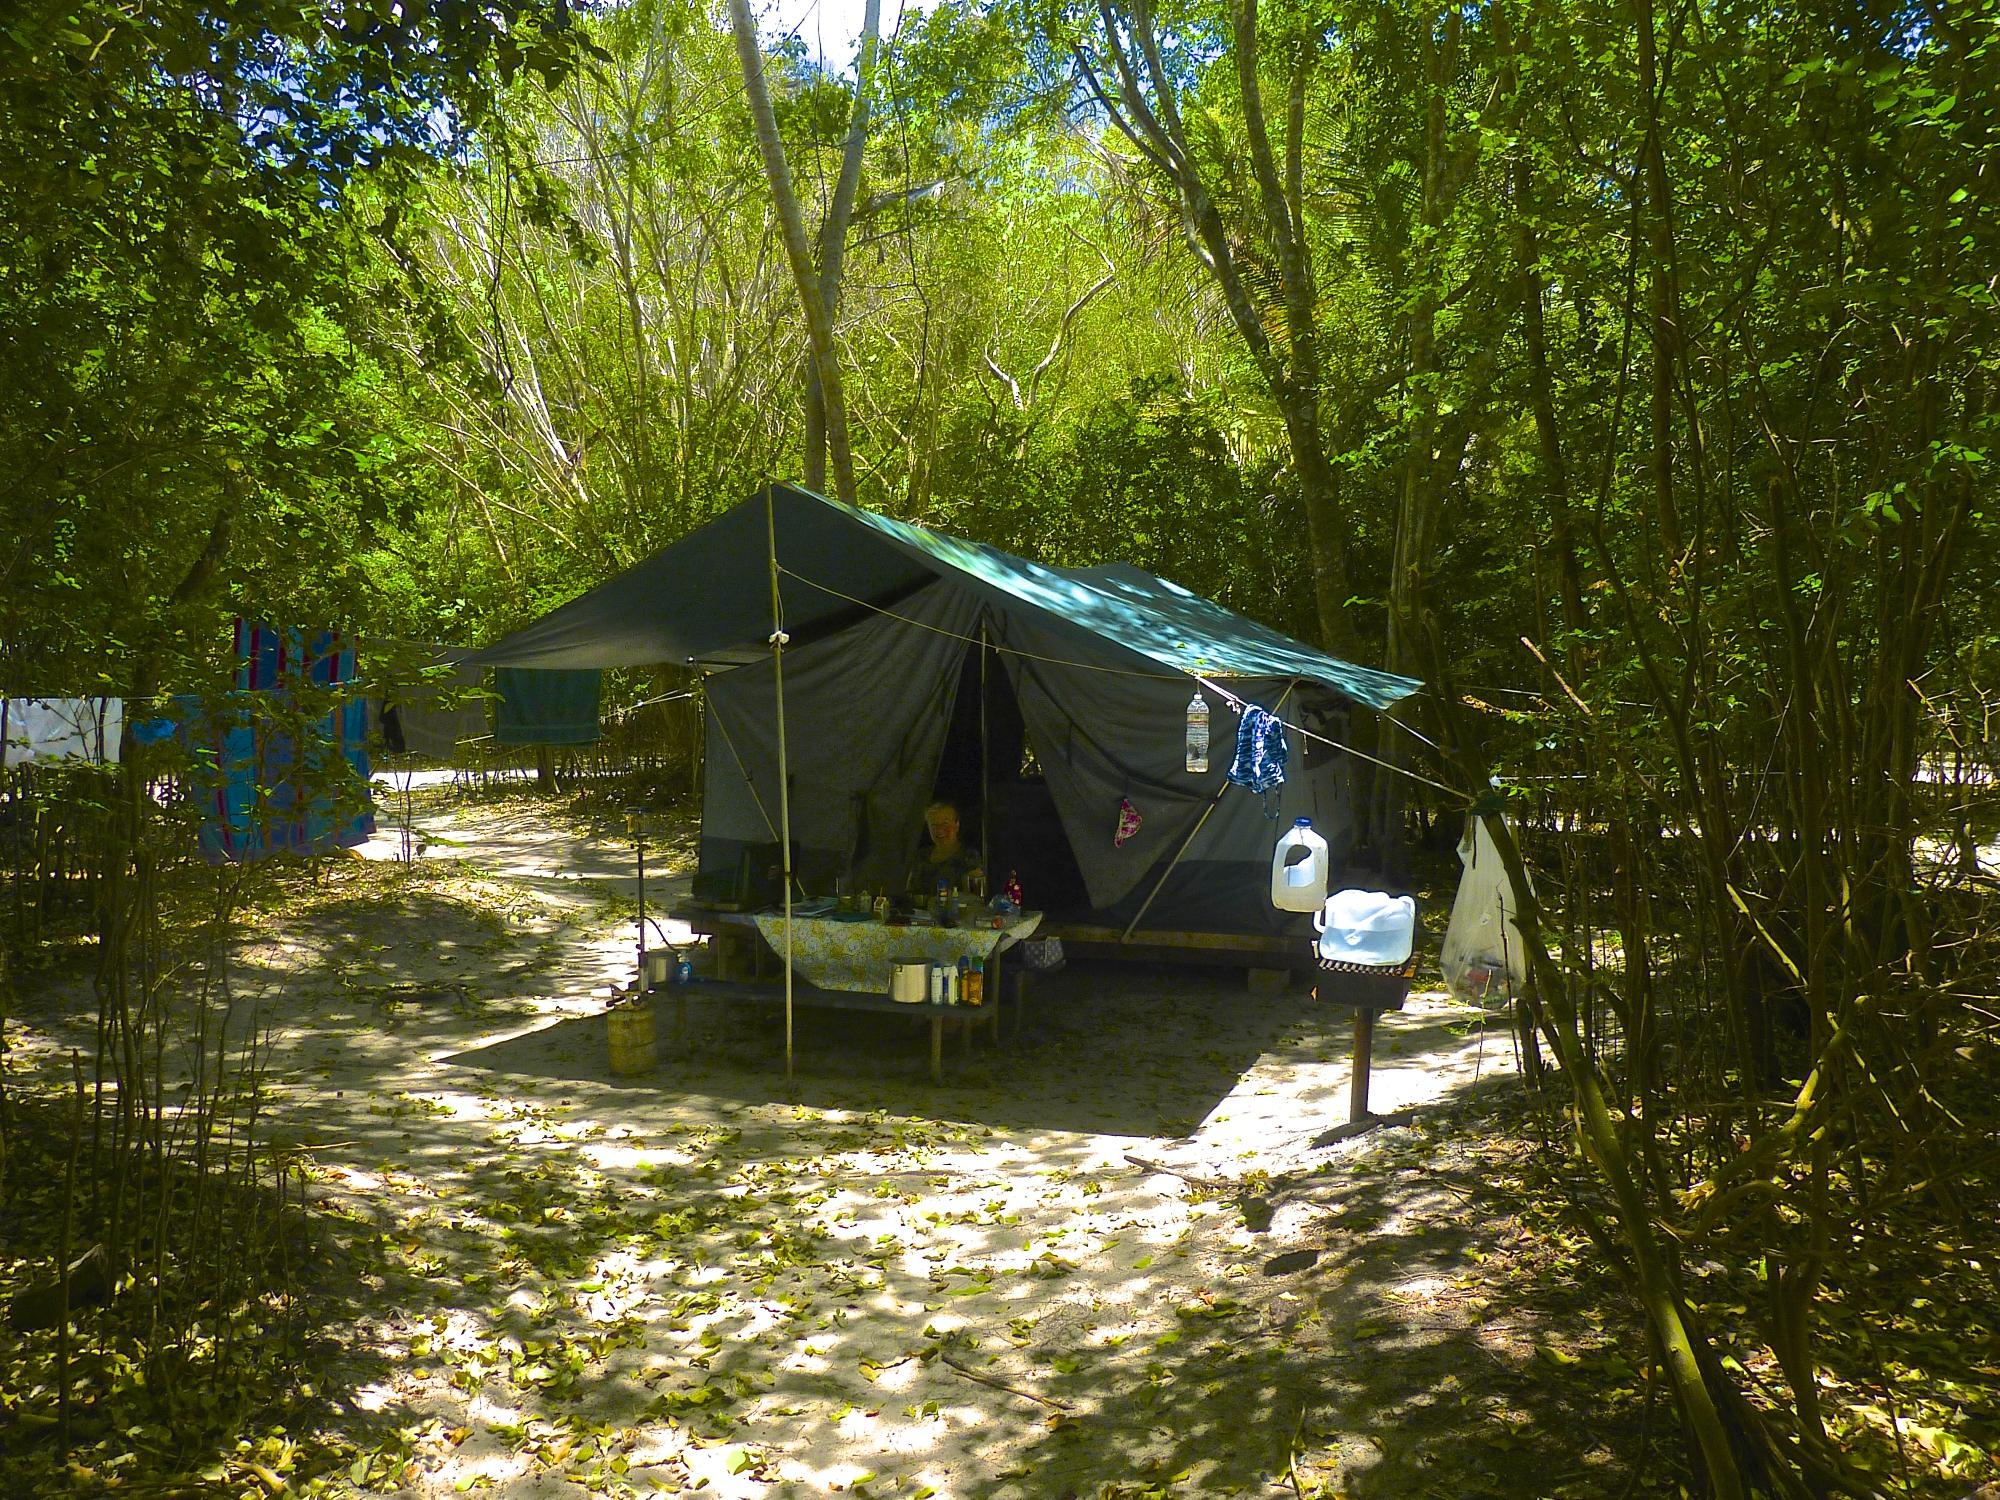 Cinnamon Bay Campground